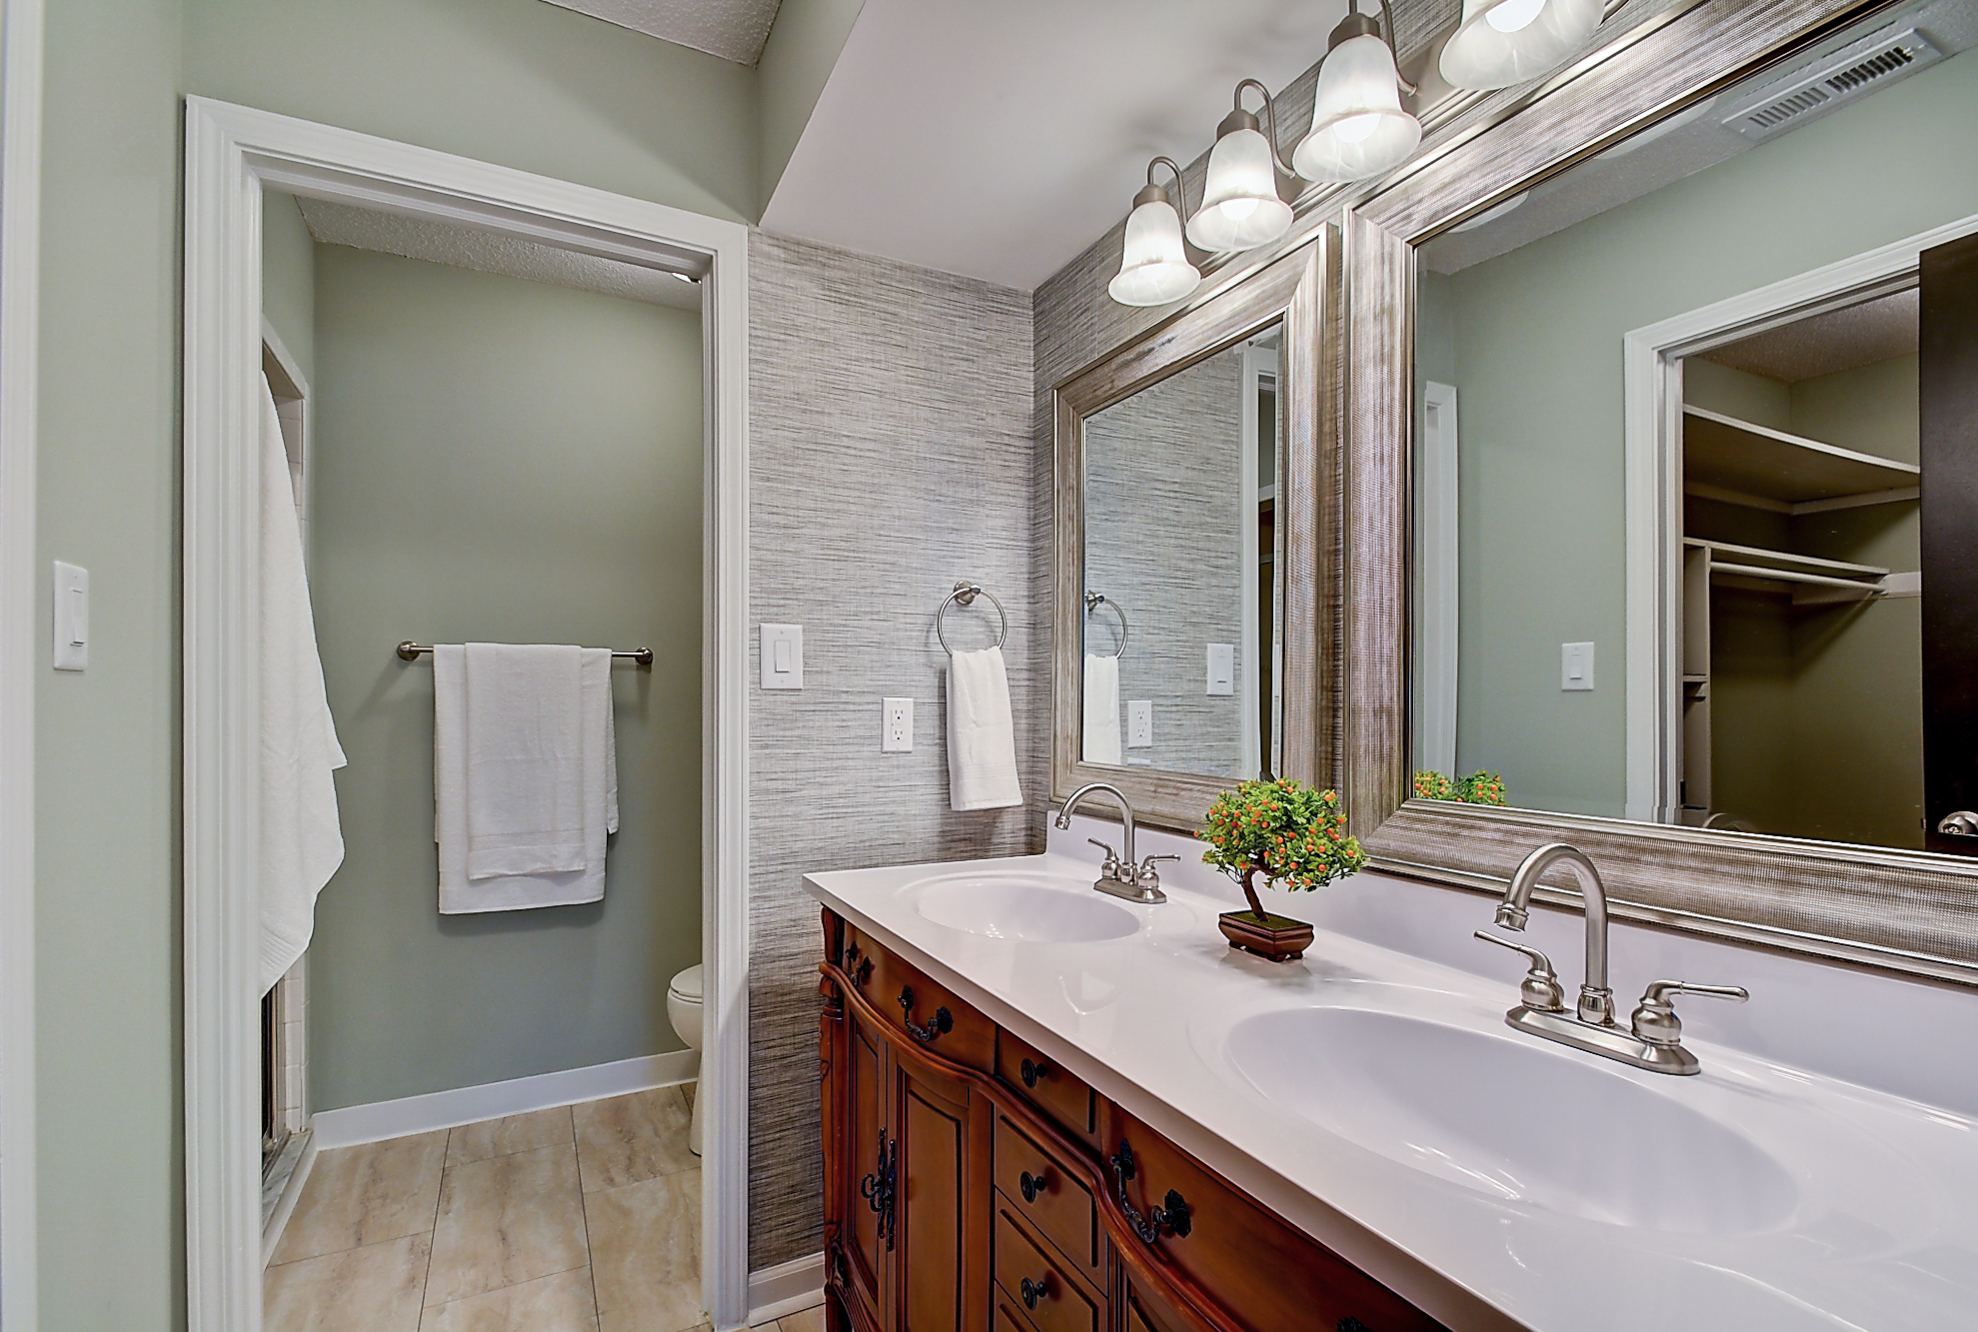 17-Master Bathroom.jpg